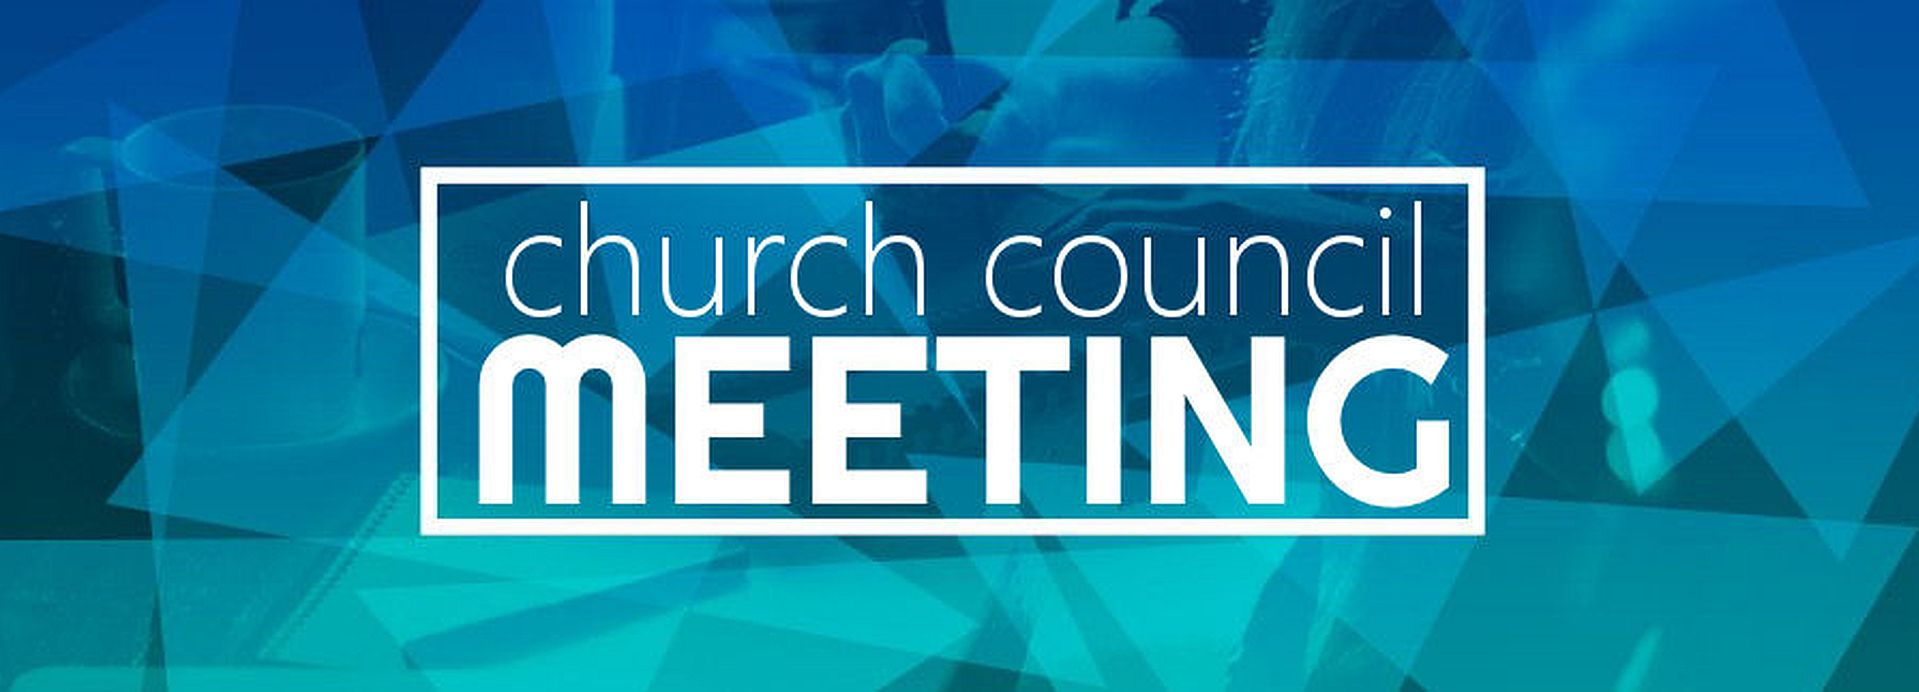 Tuesday, March 26 at 7:30 p.m.-  Church Council Meeting here at the Church.